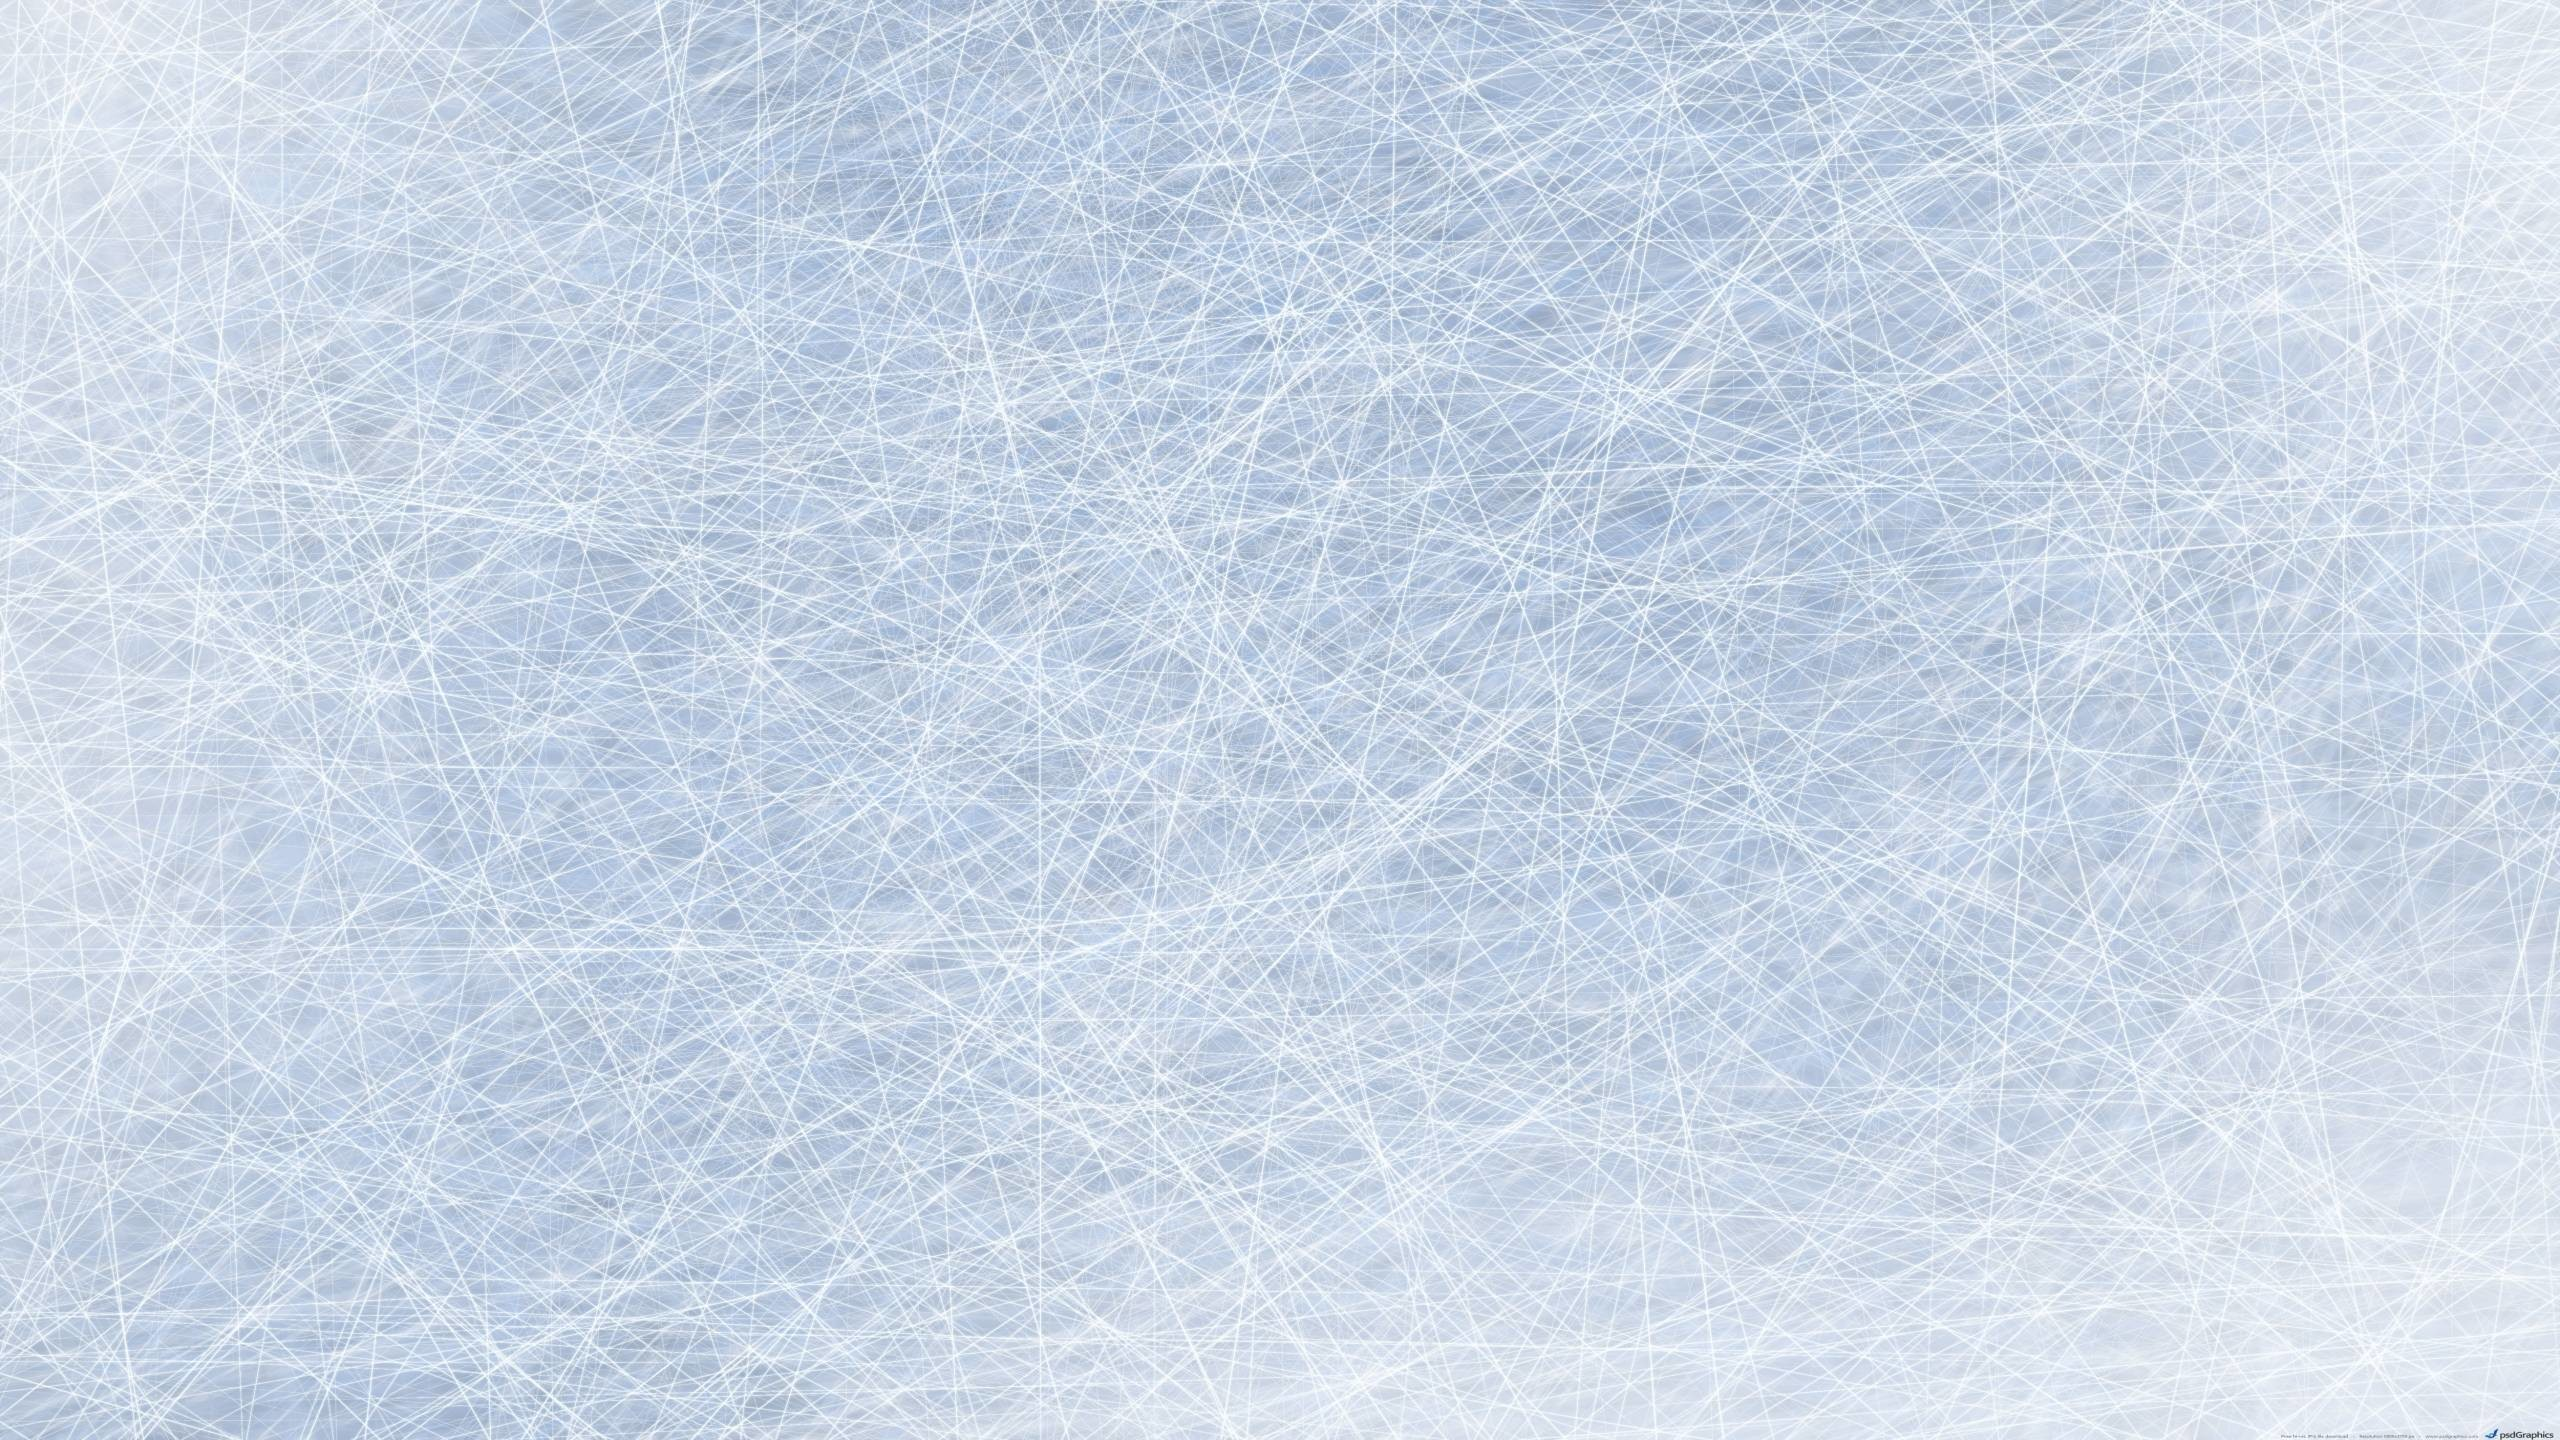 Ice Hockey Backgrounds HD Wallpapers Download Free Images Wallpaper [1000image.com]